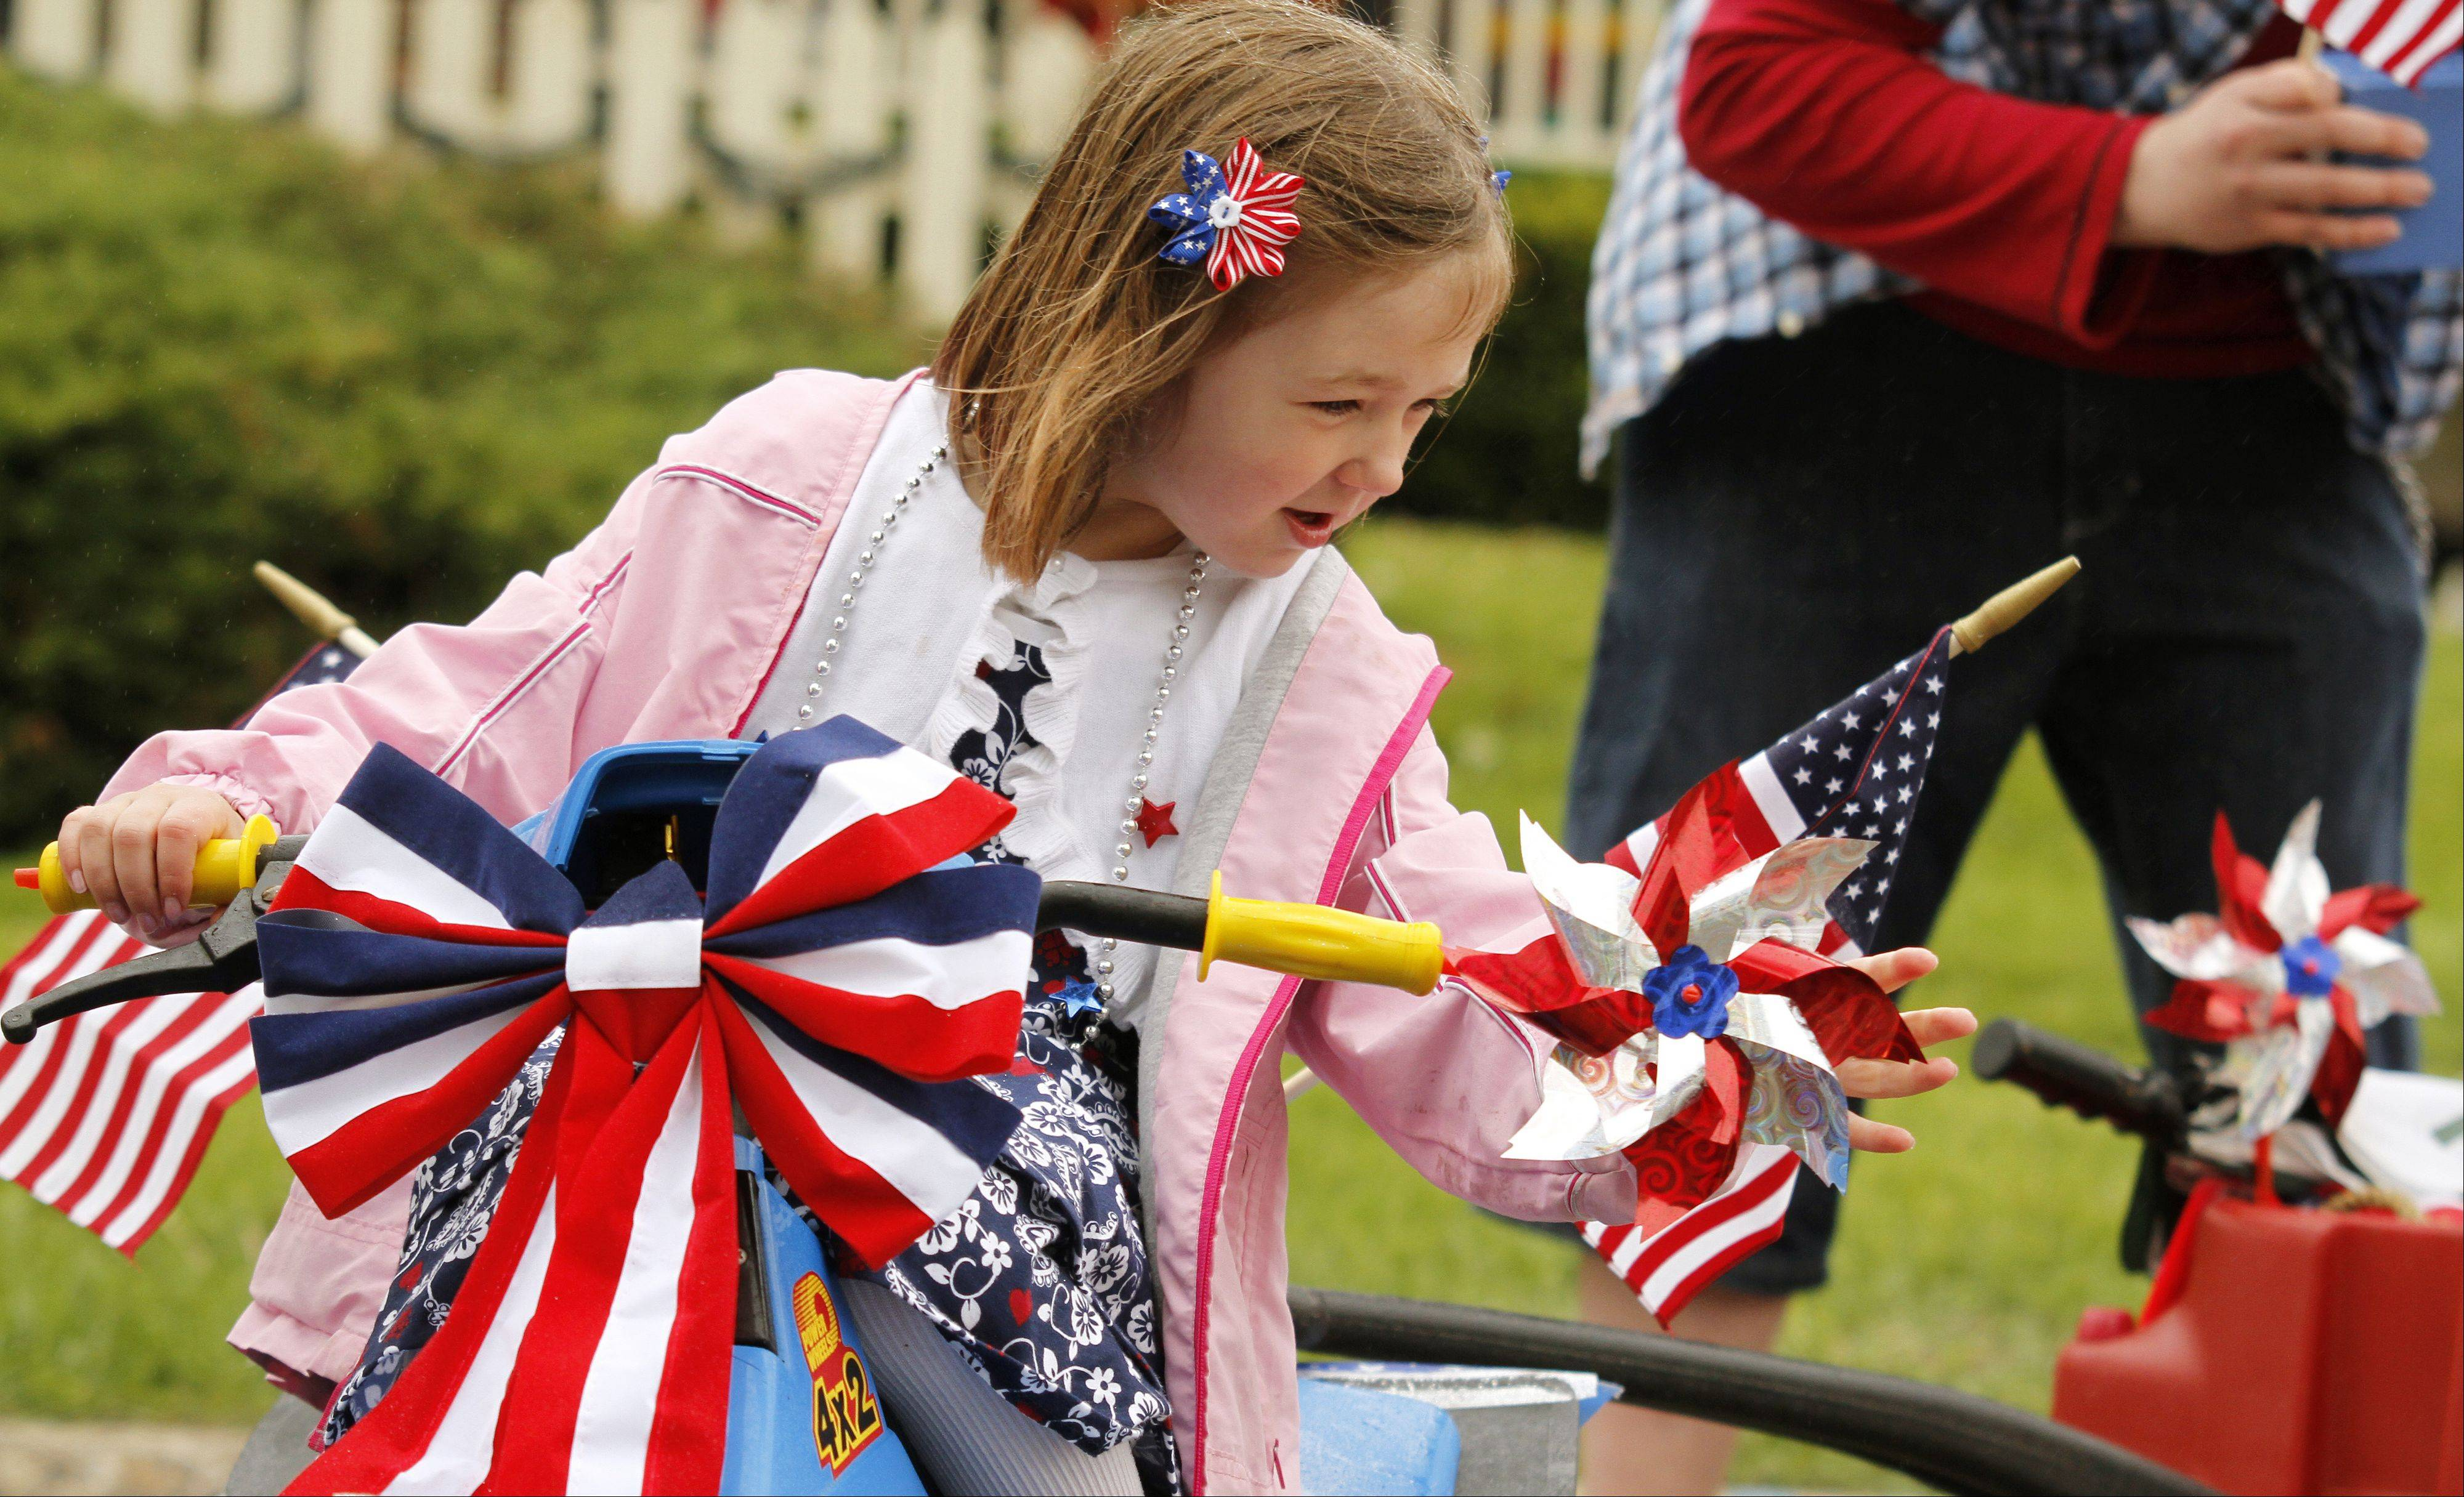 Relariel Webster, 6, of Hartford adjusts her pinwheels before the Memorial Day parade in West Bend on Monday, May 27, 2013.